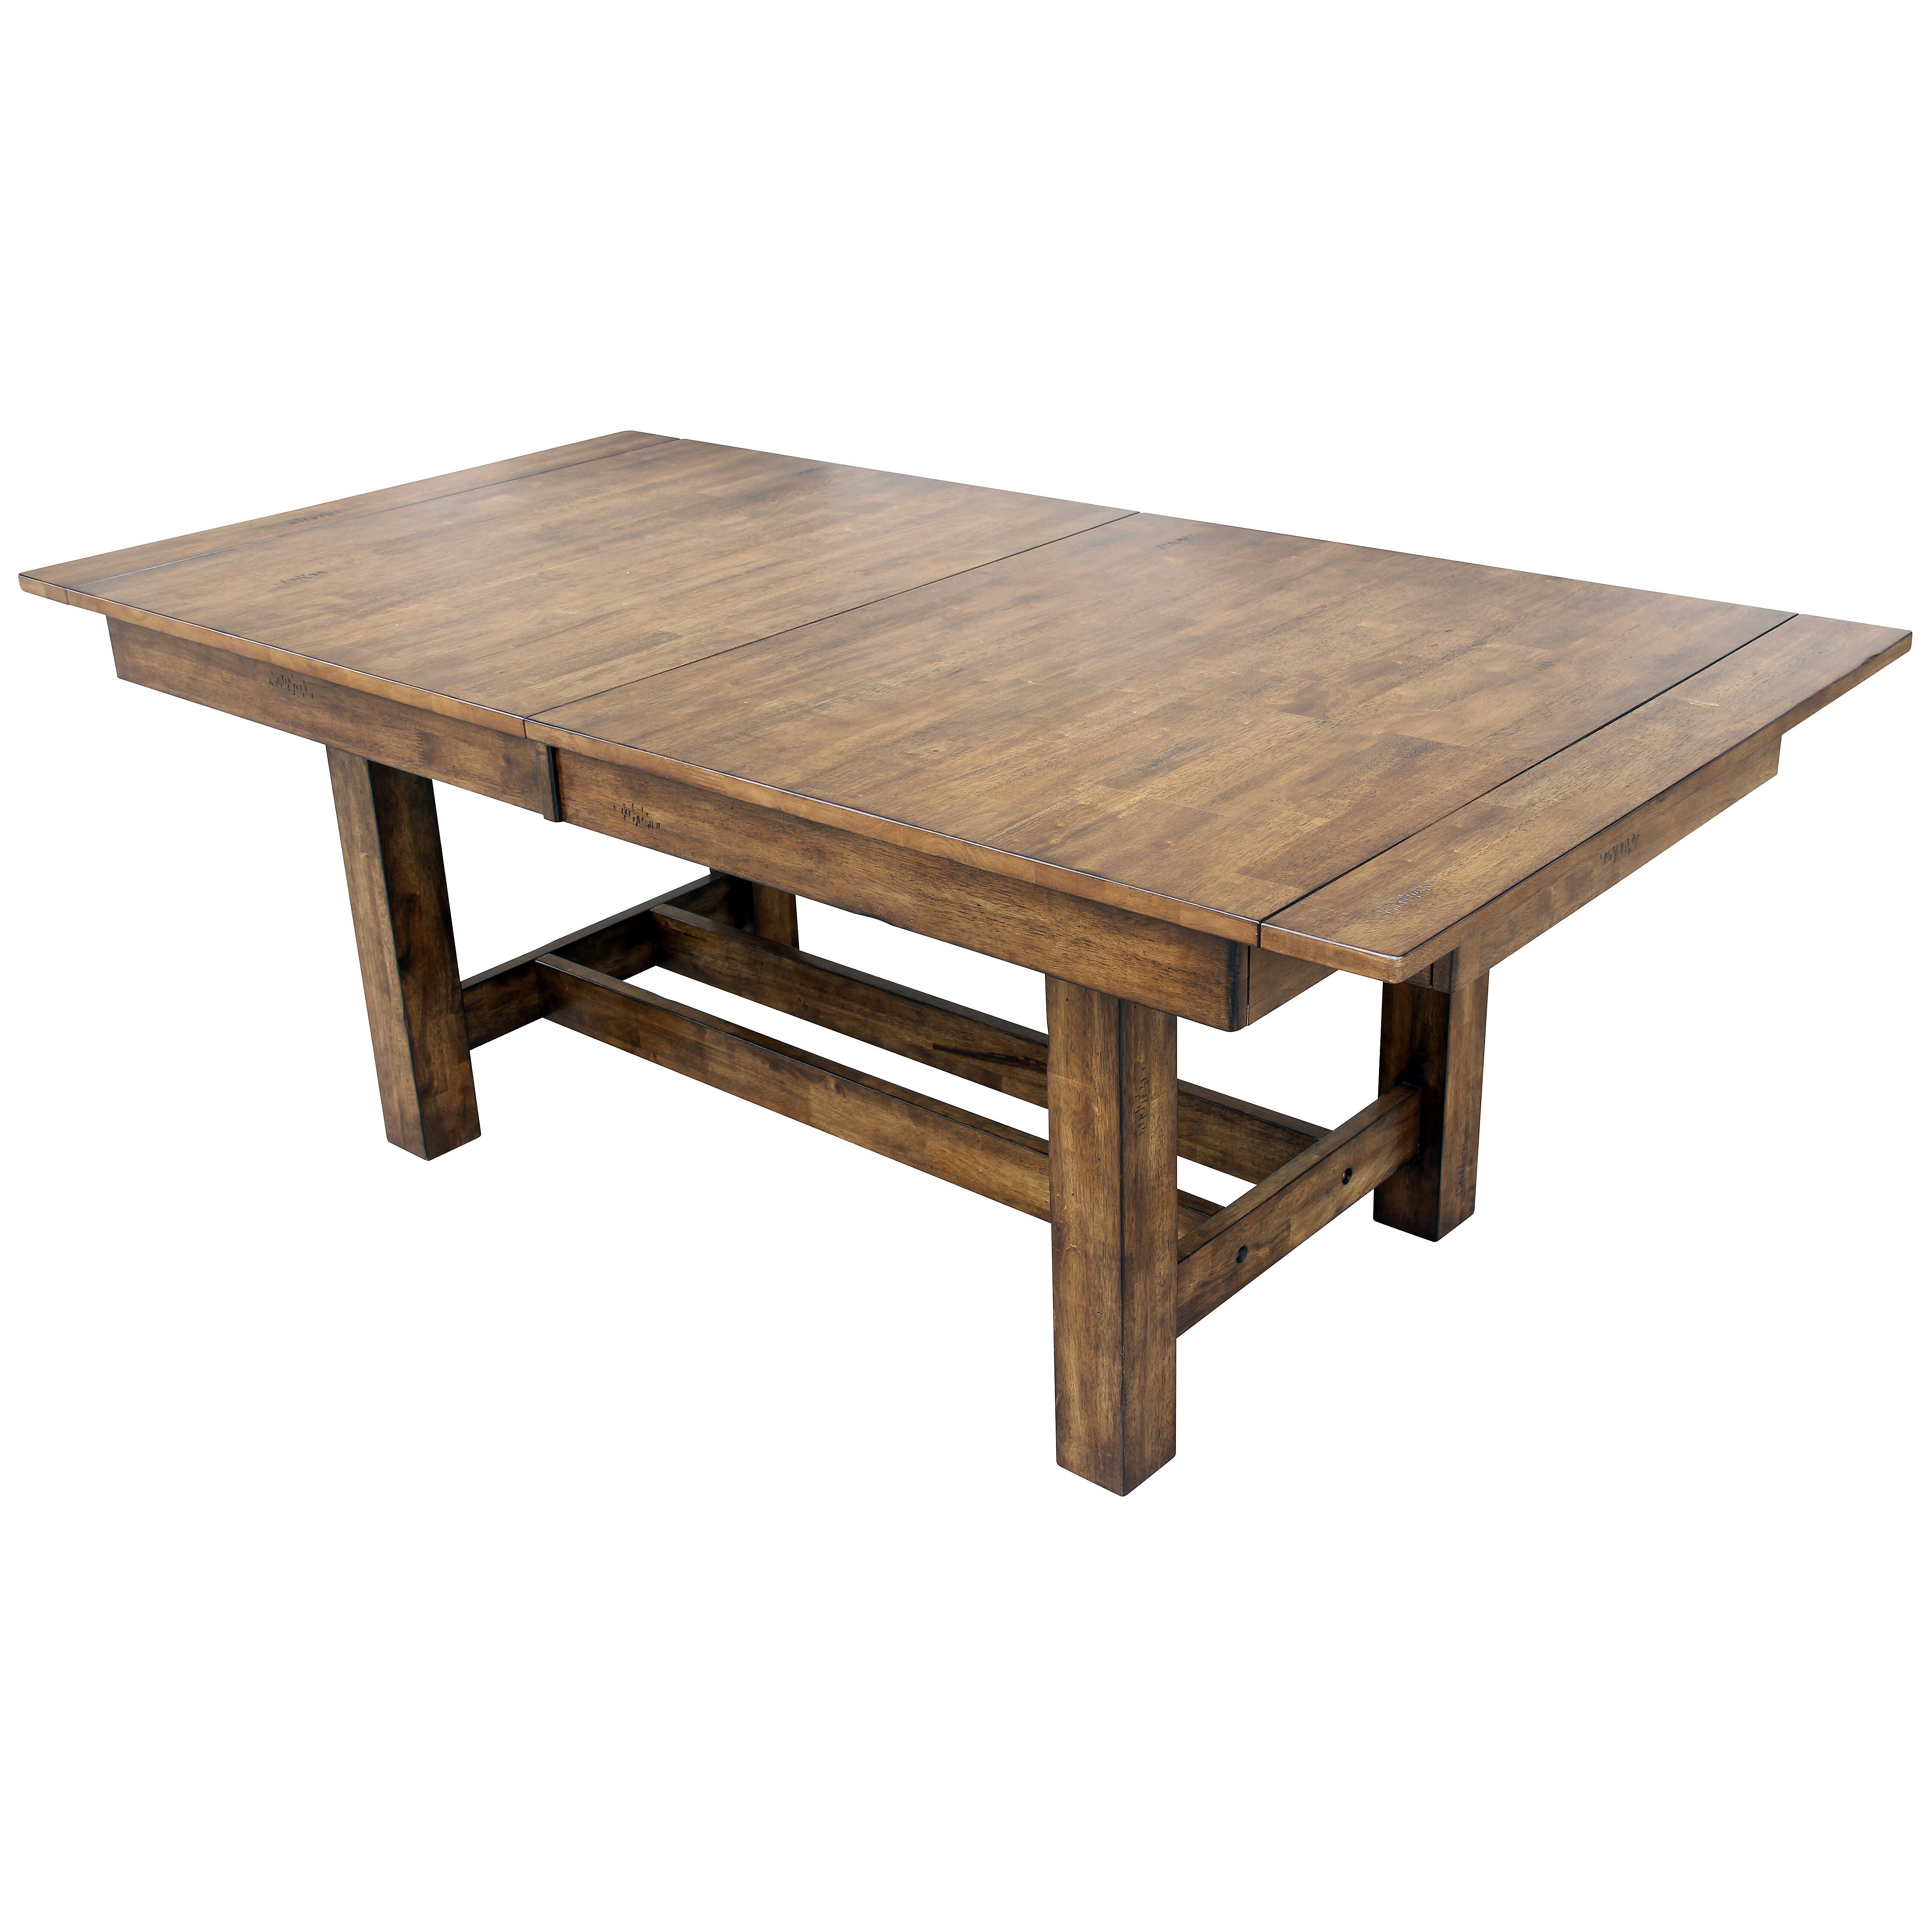 Tables rustic solid wood trestle pedestal base harvest dining table - Dining Room Table 1 Nottingham Solid Wood Trestle Pedestal Rectangular Simple Black Extendable Extendable Trestlesolid Wood